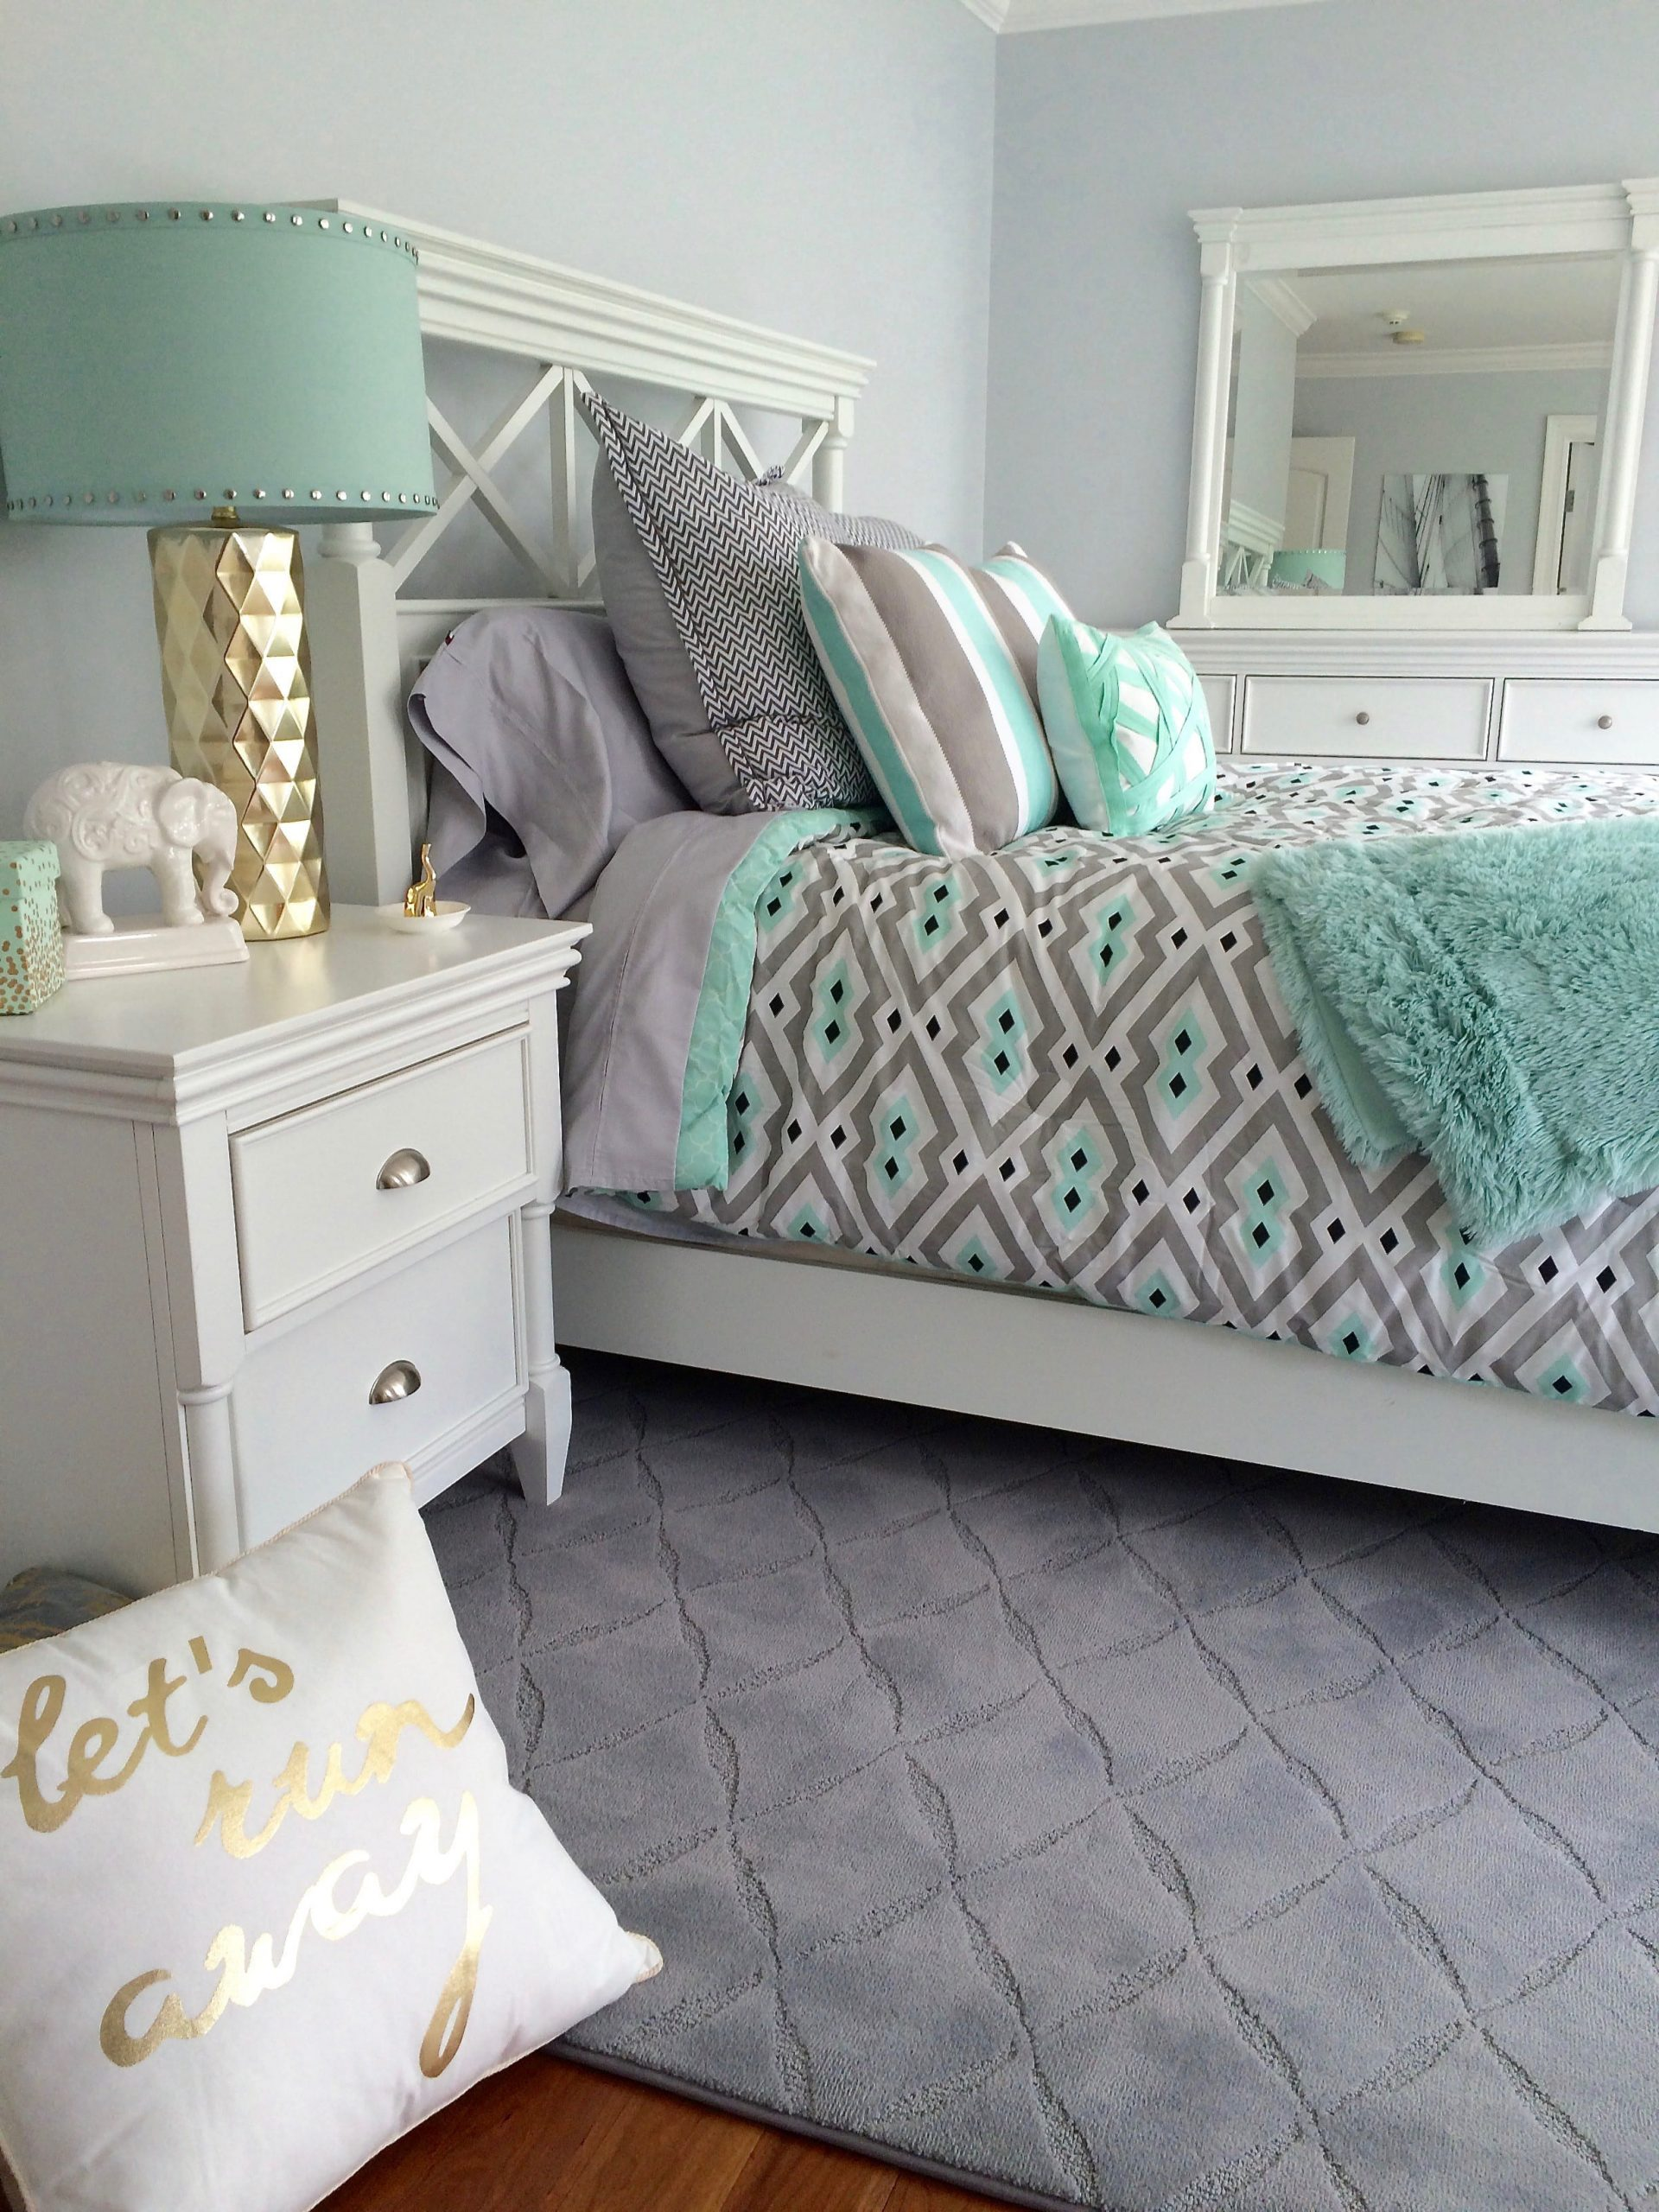 Simphome.com A blissful bedroom color scheme ideas the luxpad within 10 bedroom color palette ideas awesome and also lovely